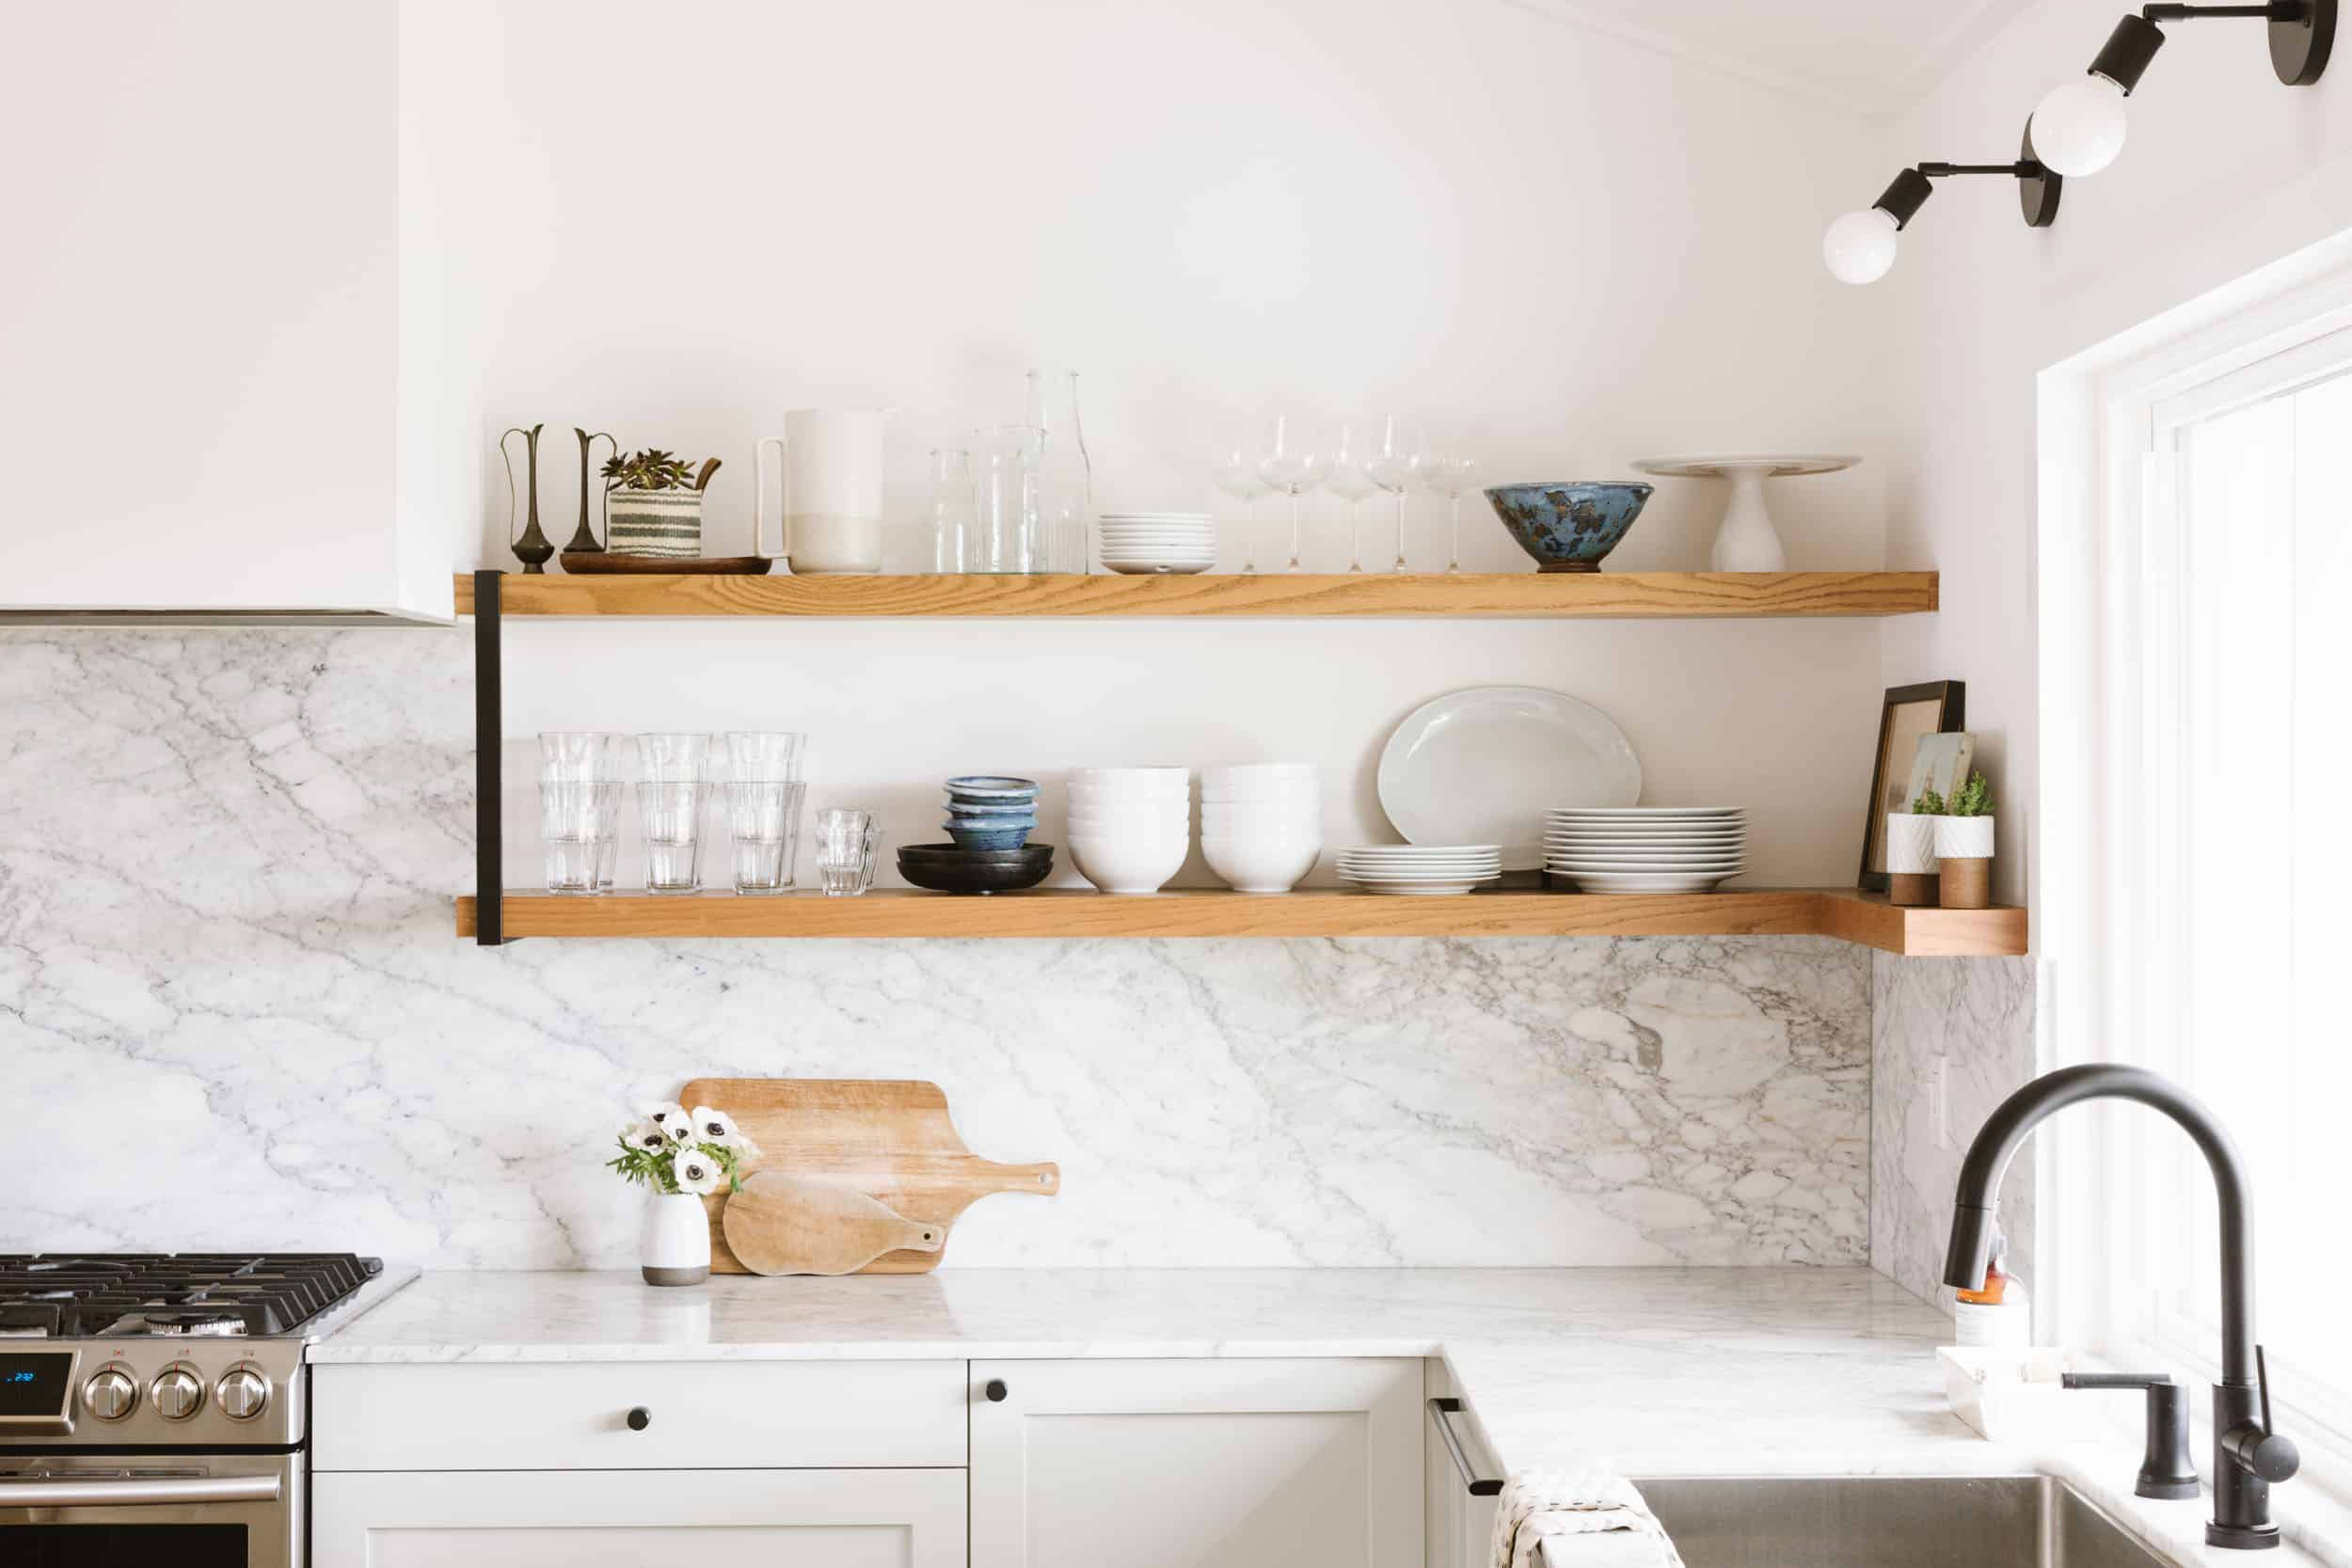 Samantha Gluck Emily Henderson Kitchen Floating Open Shelves